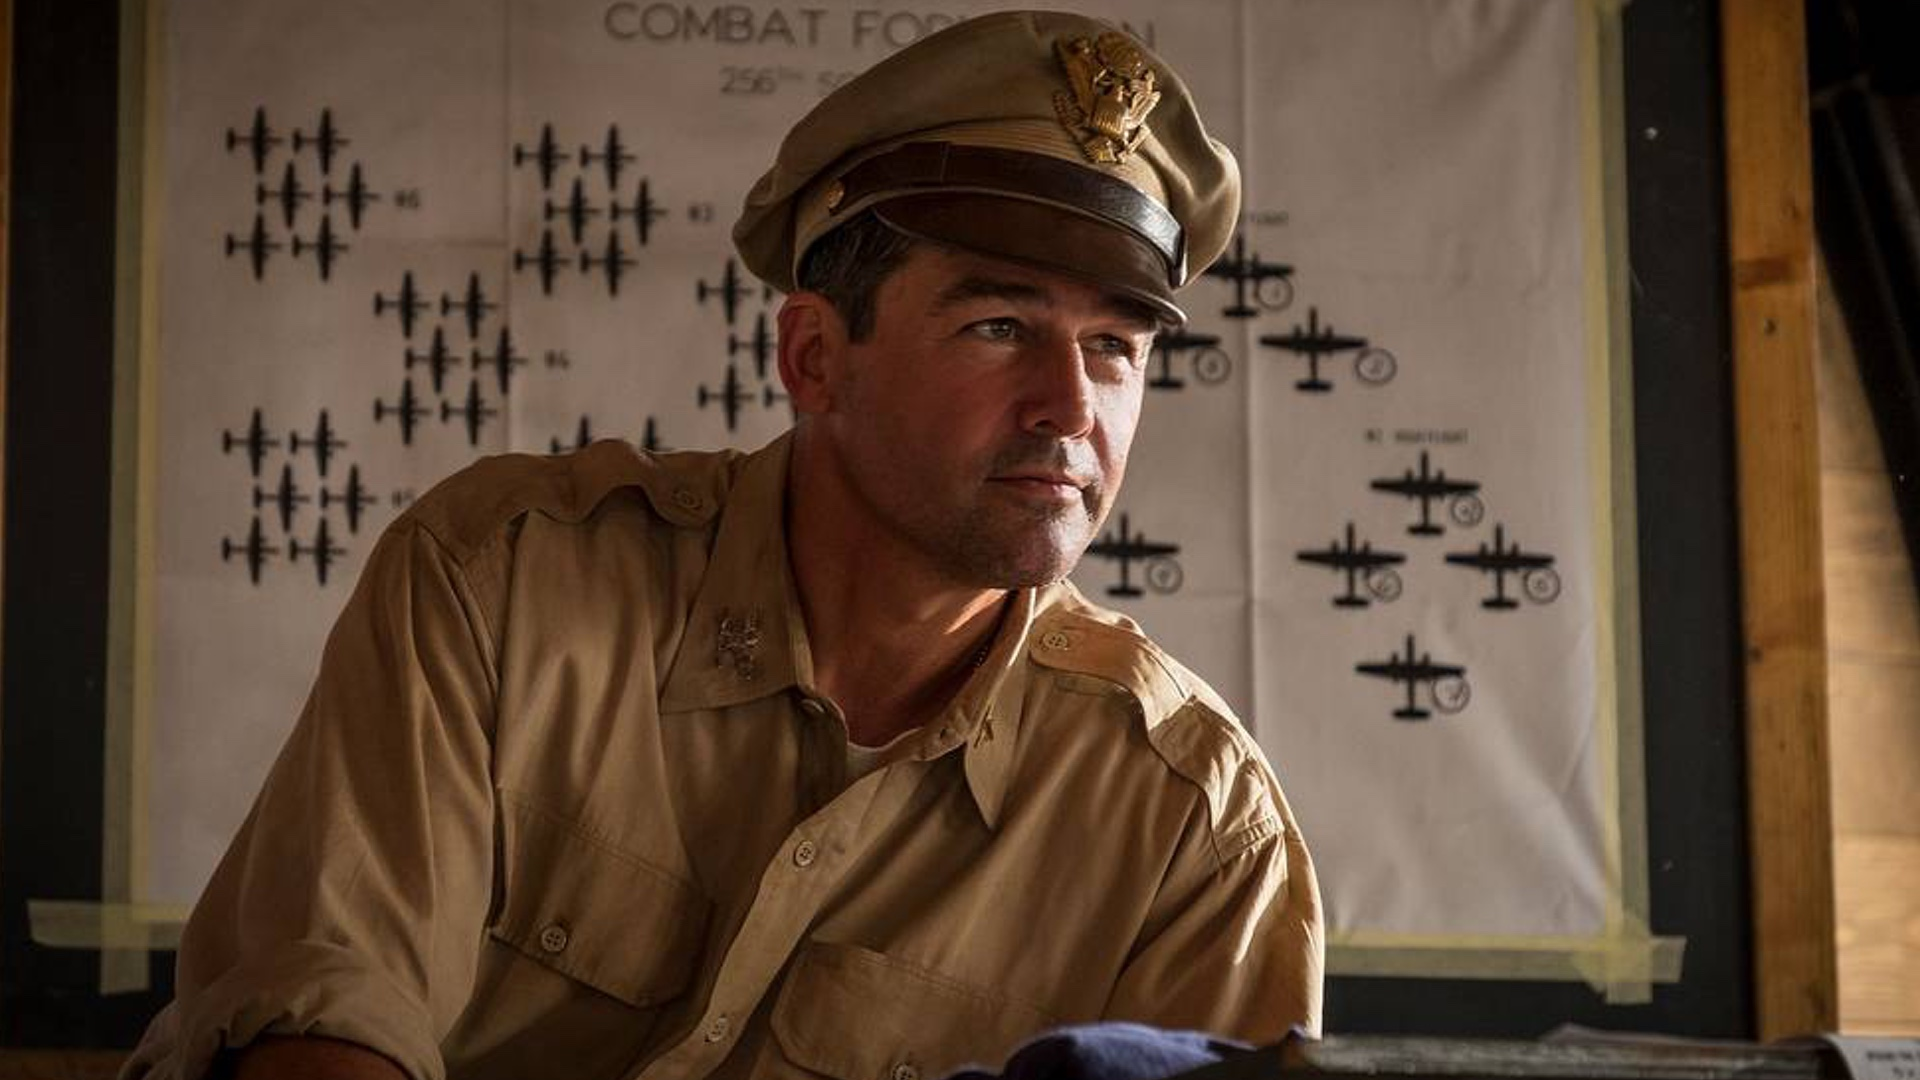 first-trailer-for-george-clooneys-wwii-hulu-series-catch-22-social.jpg